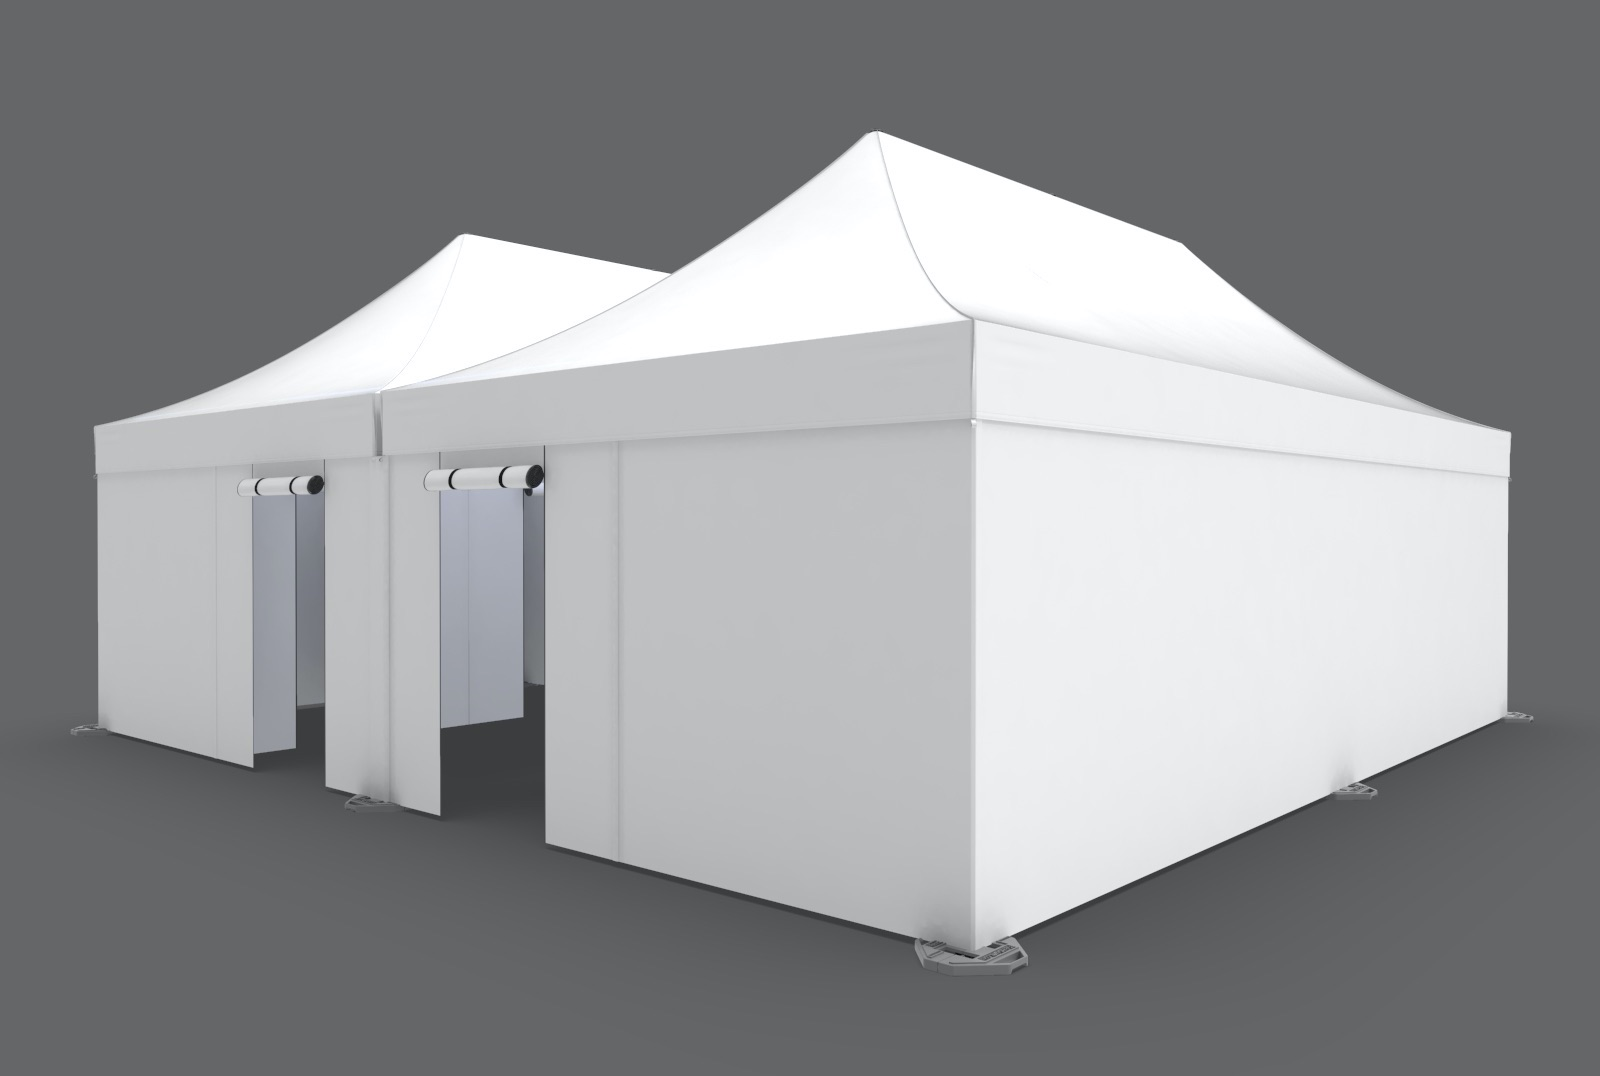 outside view of a white, two-entrance, eight-room infirmary tent